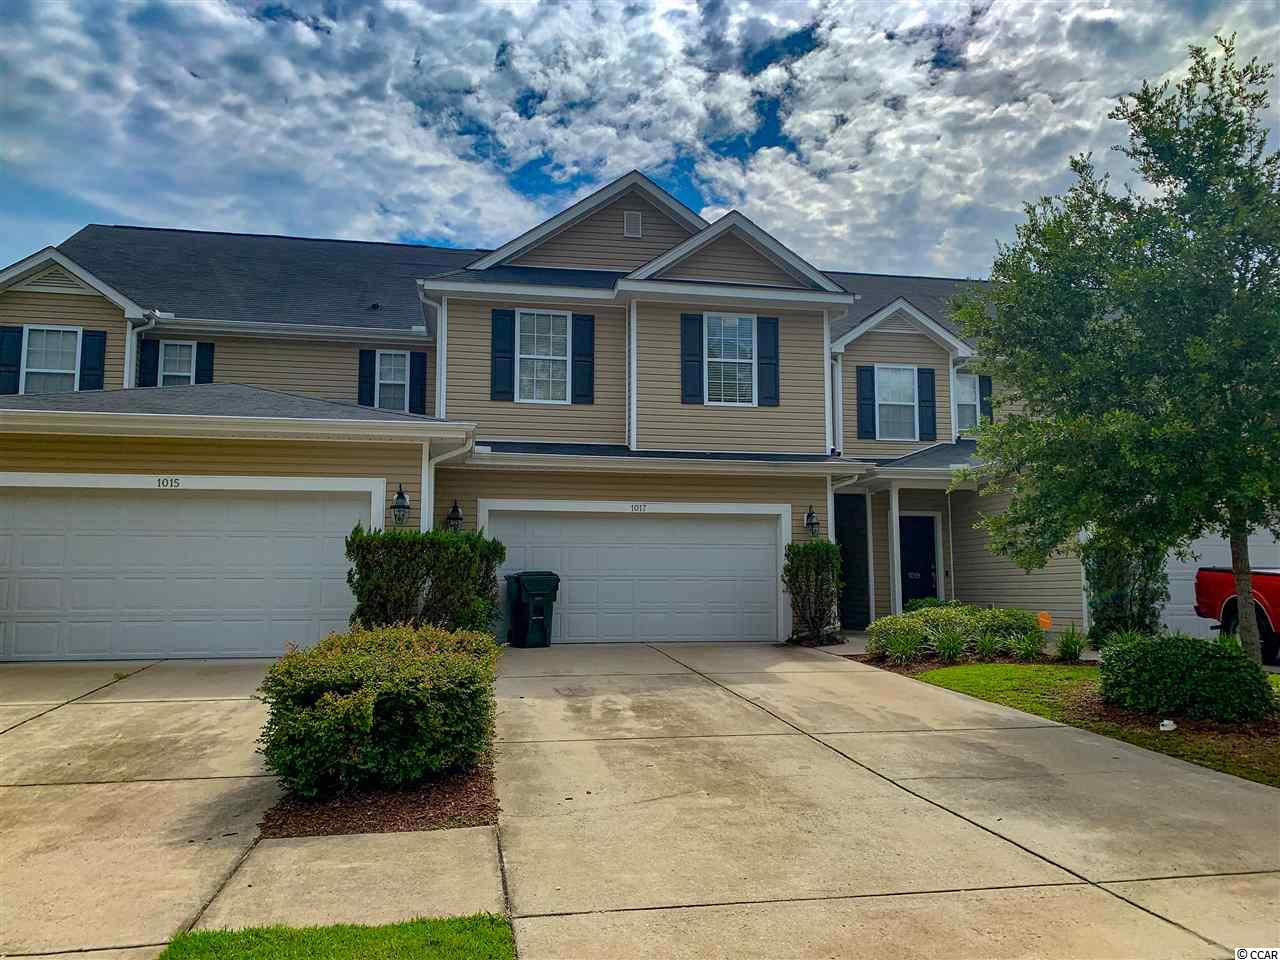 Fantastic investment opportunity in this spacious 3BR/2.5BA townhouse located close to university, Conway Medical Center, golf, shopping, restaurants & so much. This unit features spacious bedrooms and separate laundry area. Heating/cooling system replaced in 2018. Square footage is approximate and not guaranteed. Buyer is responsible for verification.